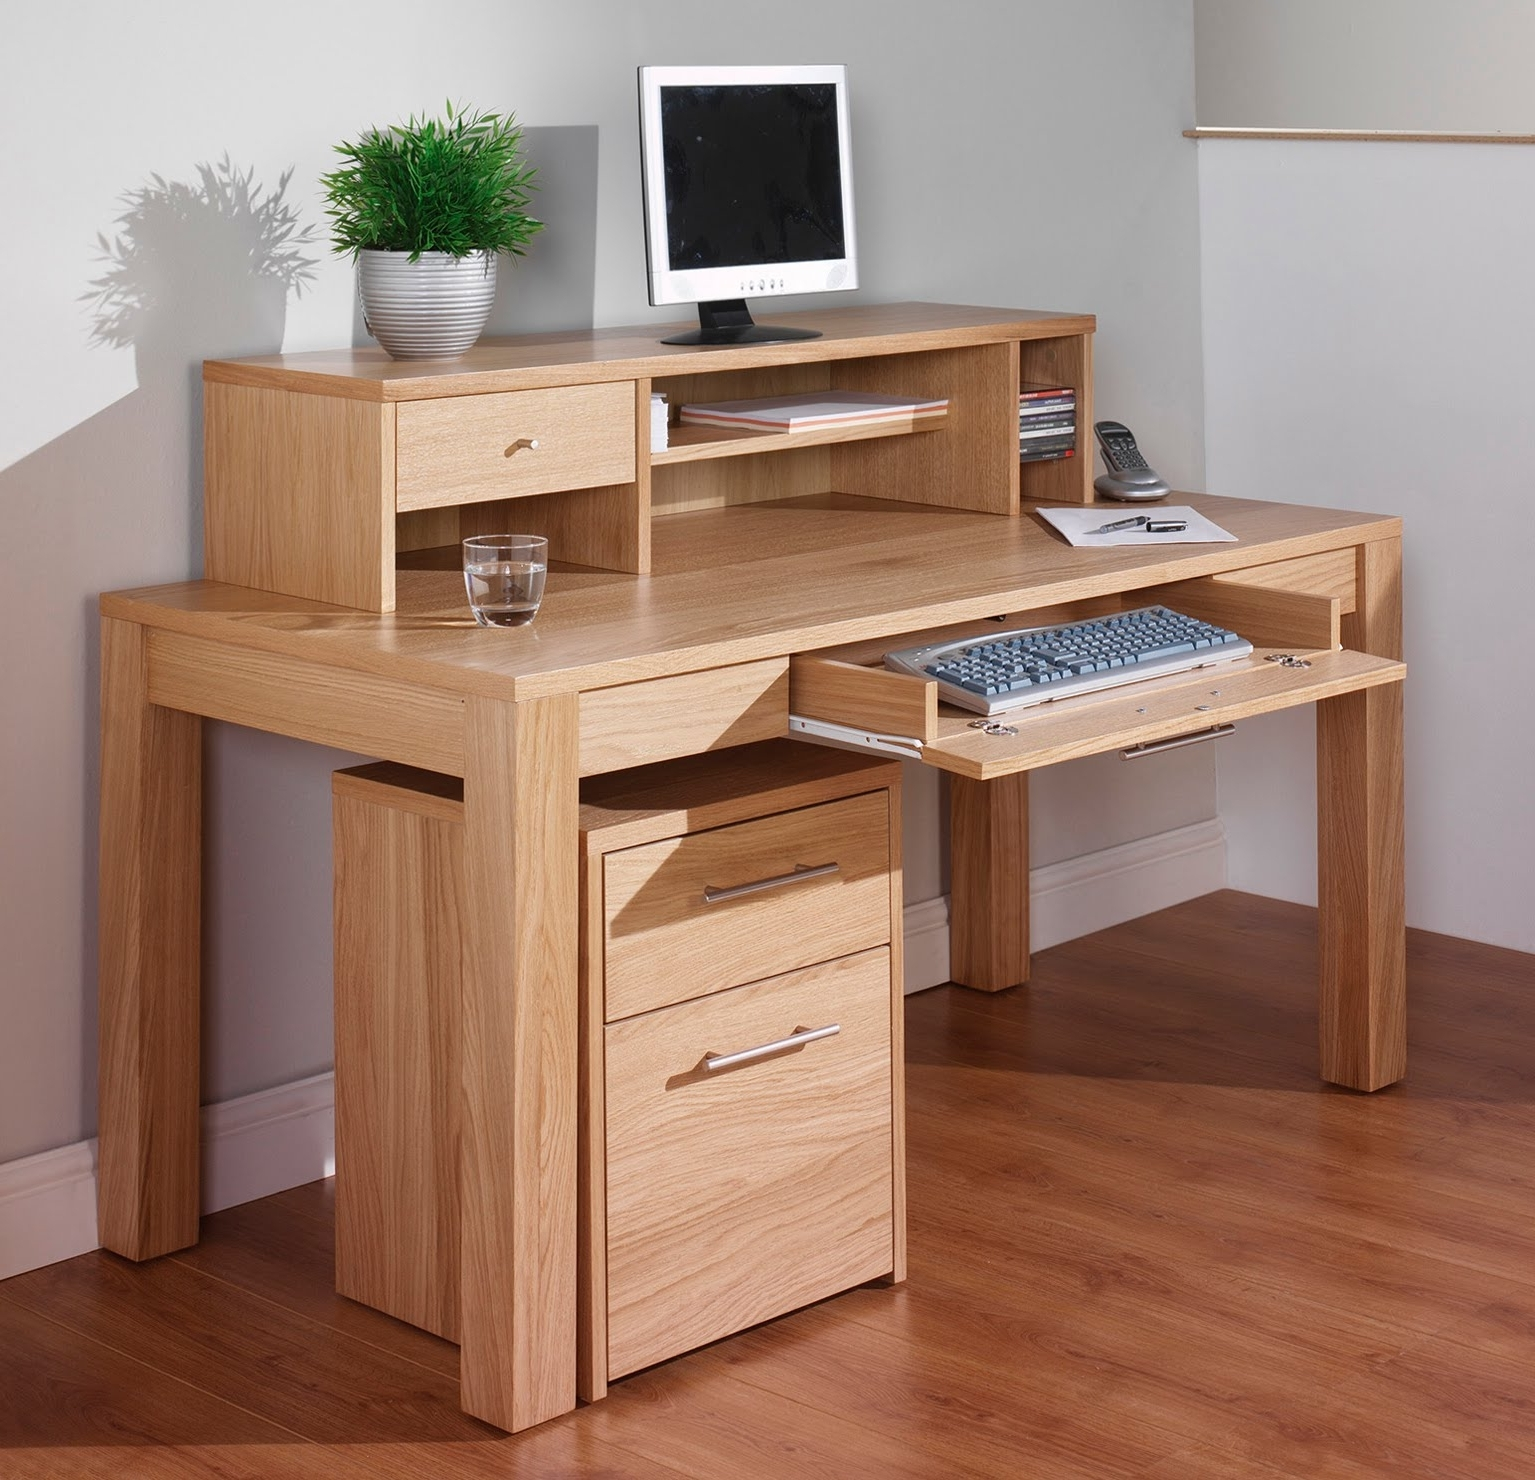 Current Furniture Modern Narrow Computer Desk Small Wooden 2017 With With Regard To Computer Desks For Home (View 17 of 20)